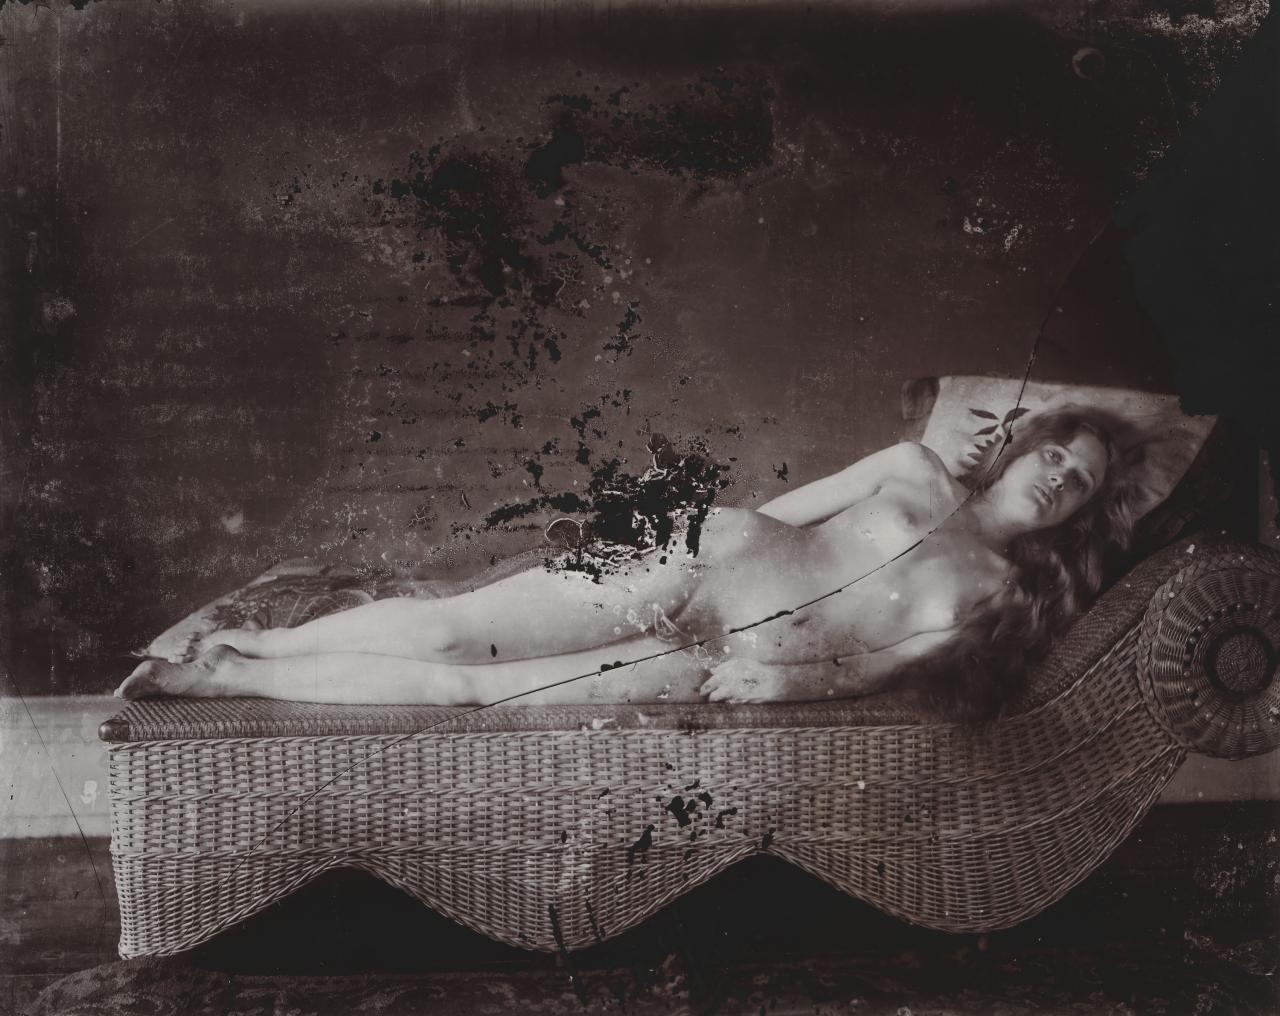 No title (Woman reclining on rattan couch)